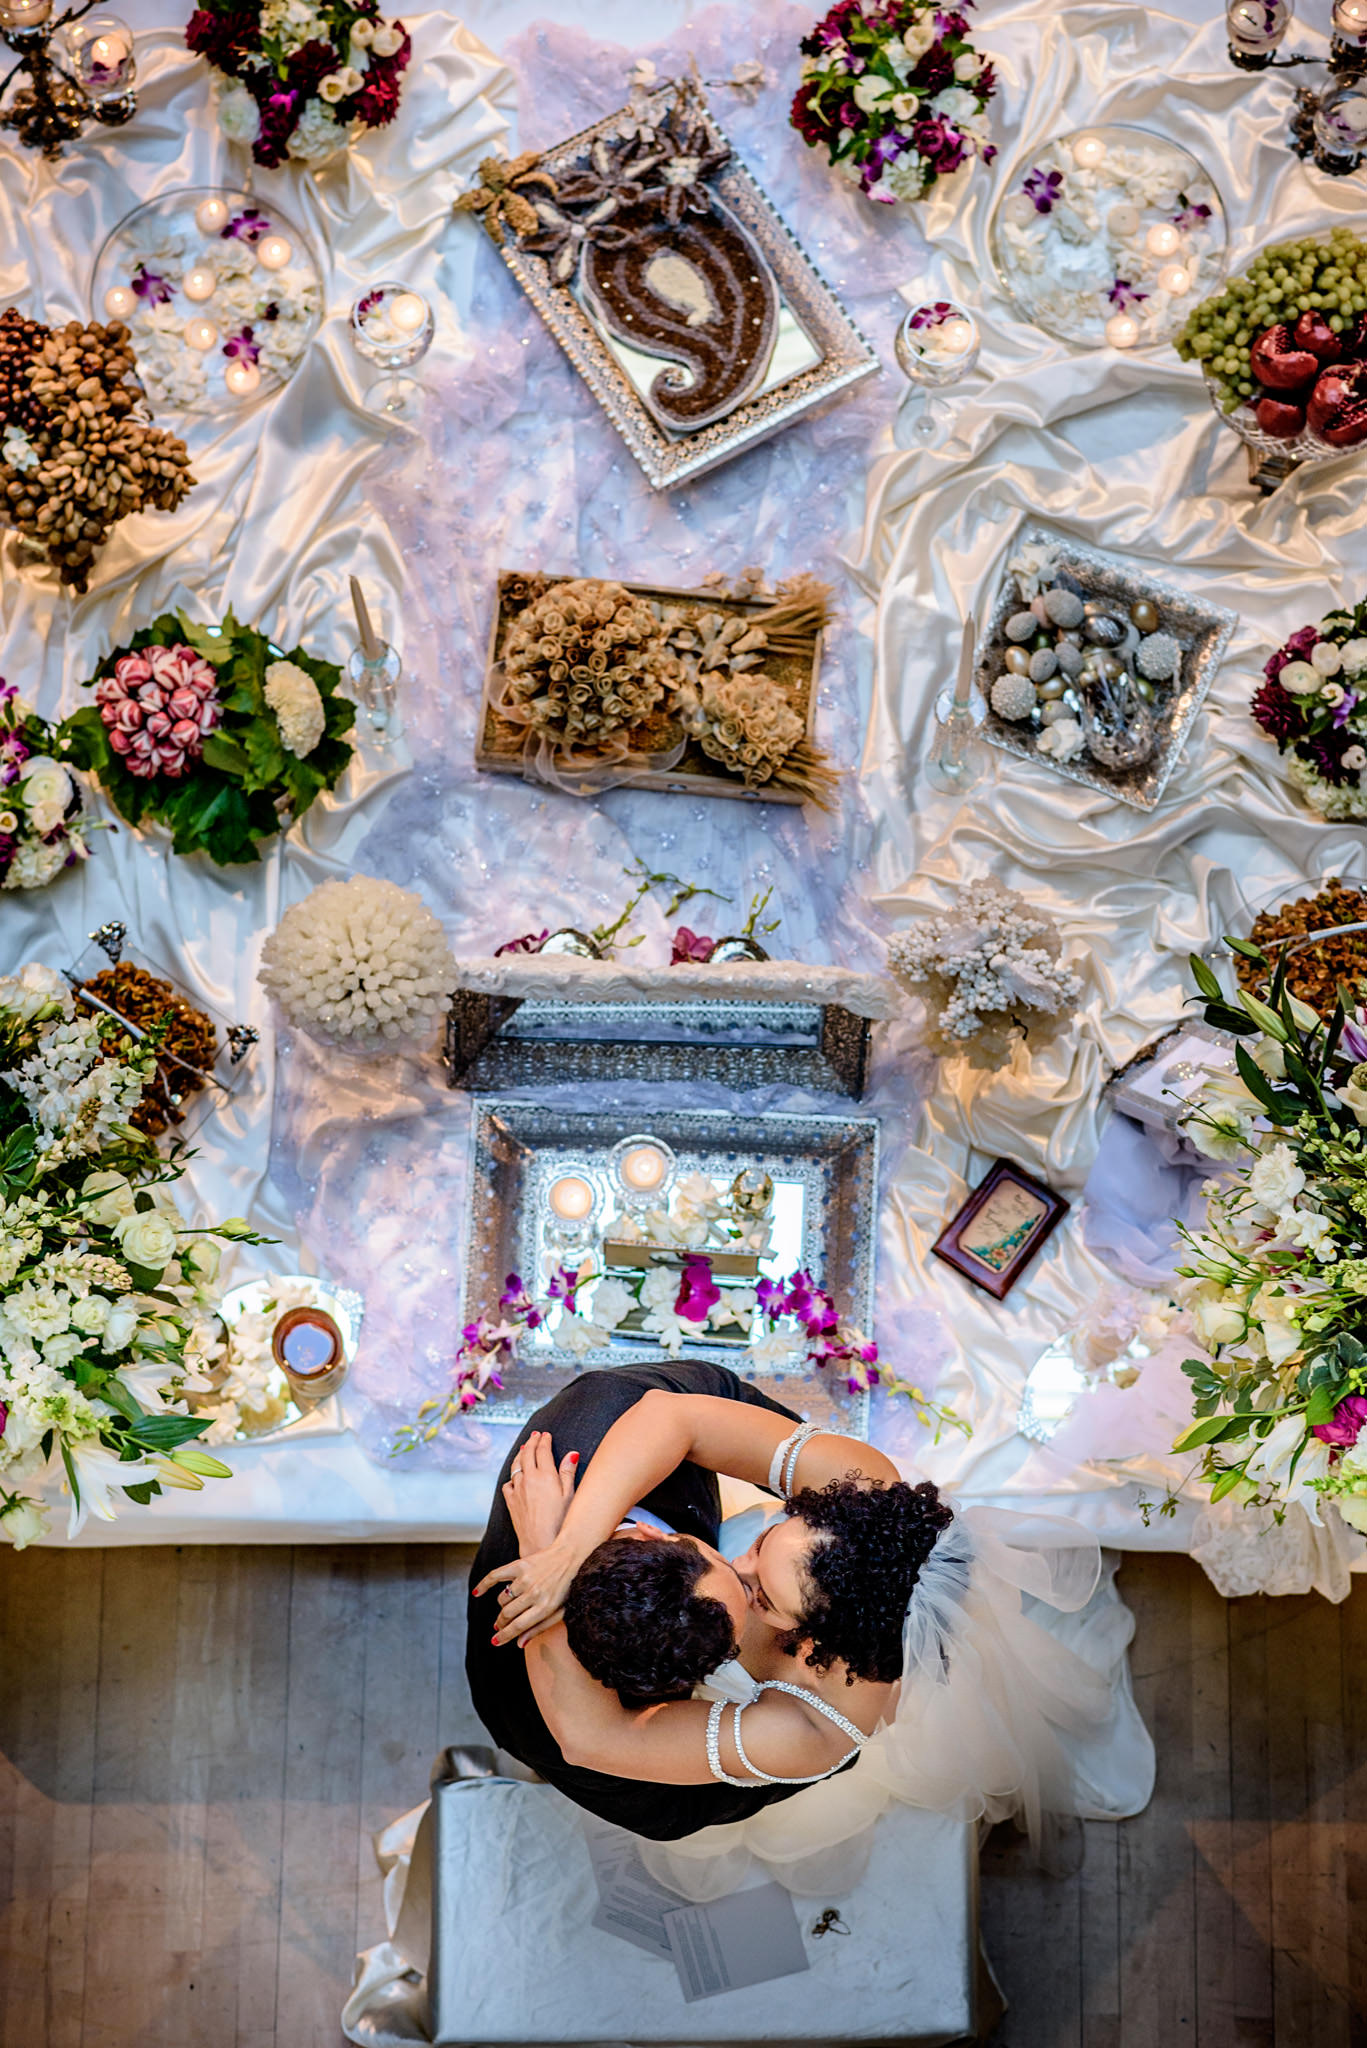 Bride and bridegroom share their first kiss at Persian wedding in California